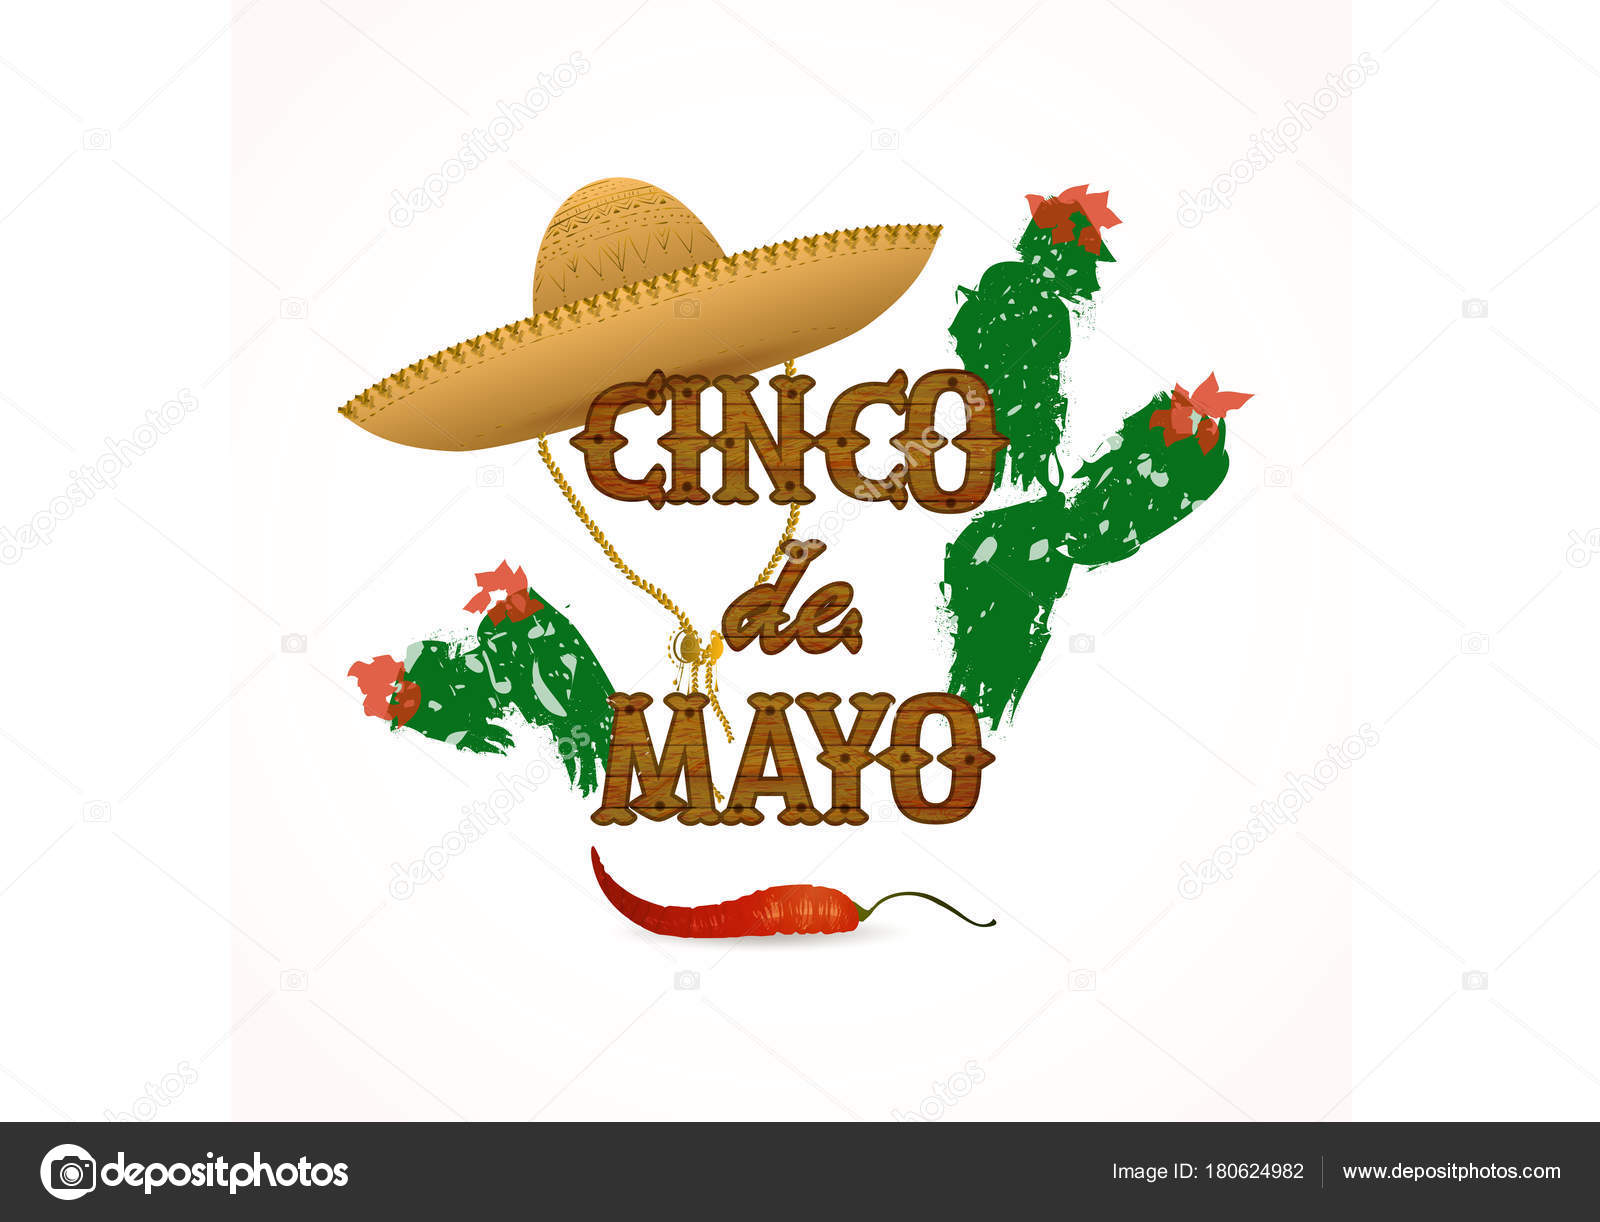 Cinco mayo poster traditional mexican colors sombrero cactus chile cinco de mayo poster traditional mexican colors sombrero cactus chile greetings background for celebration hand drawn elements wood text design kristyandbryce Gallery